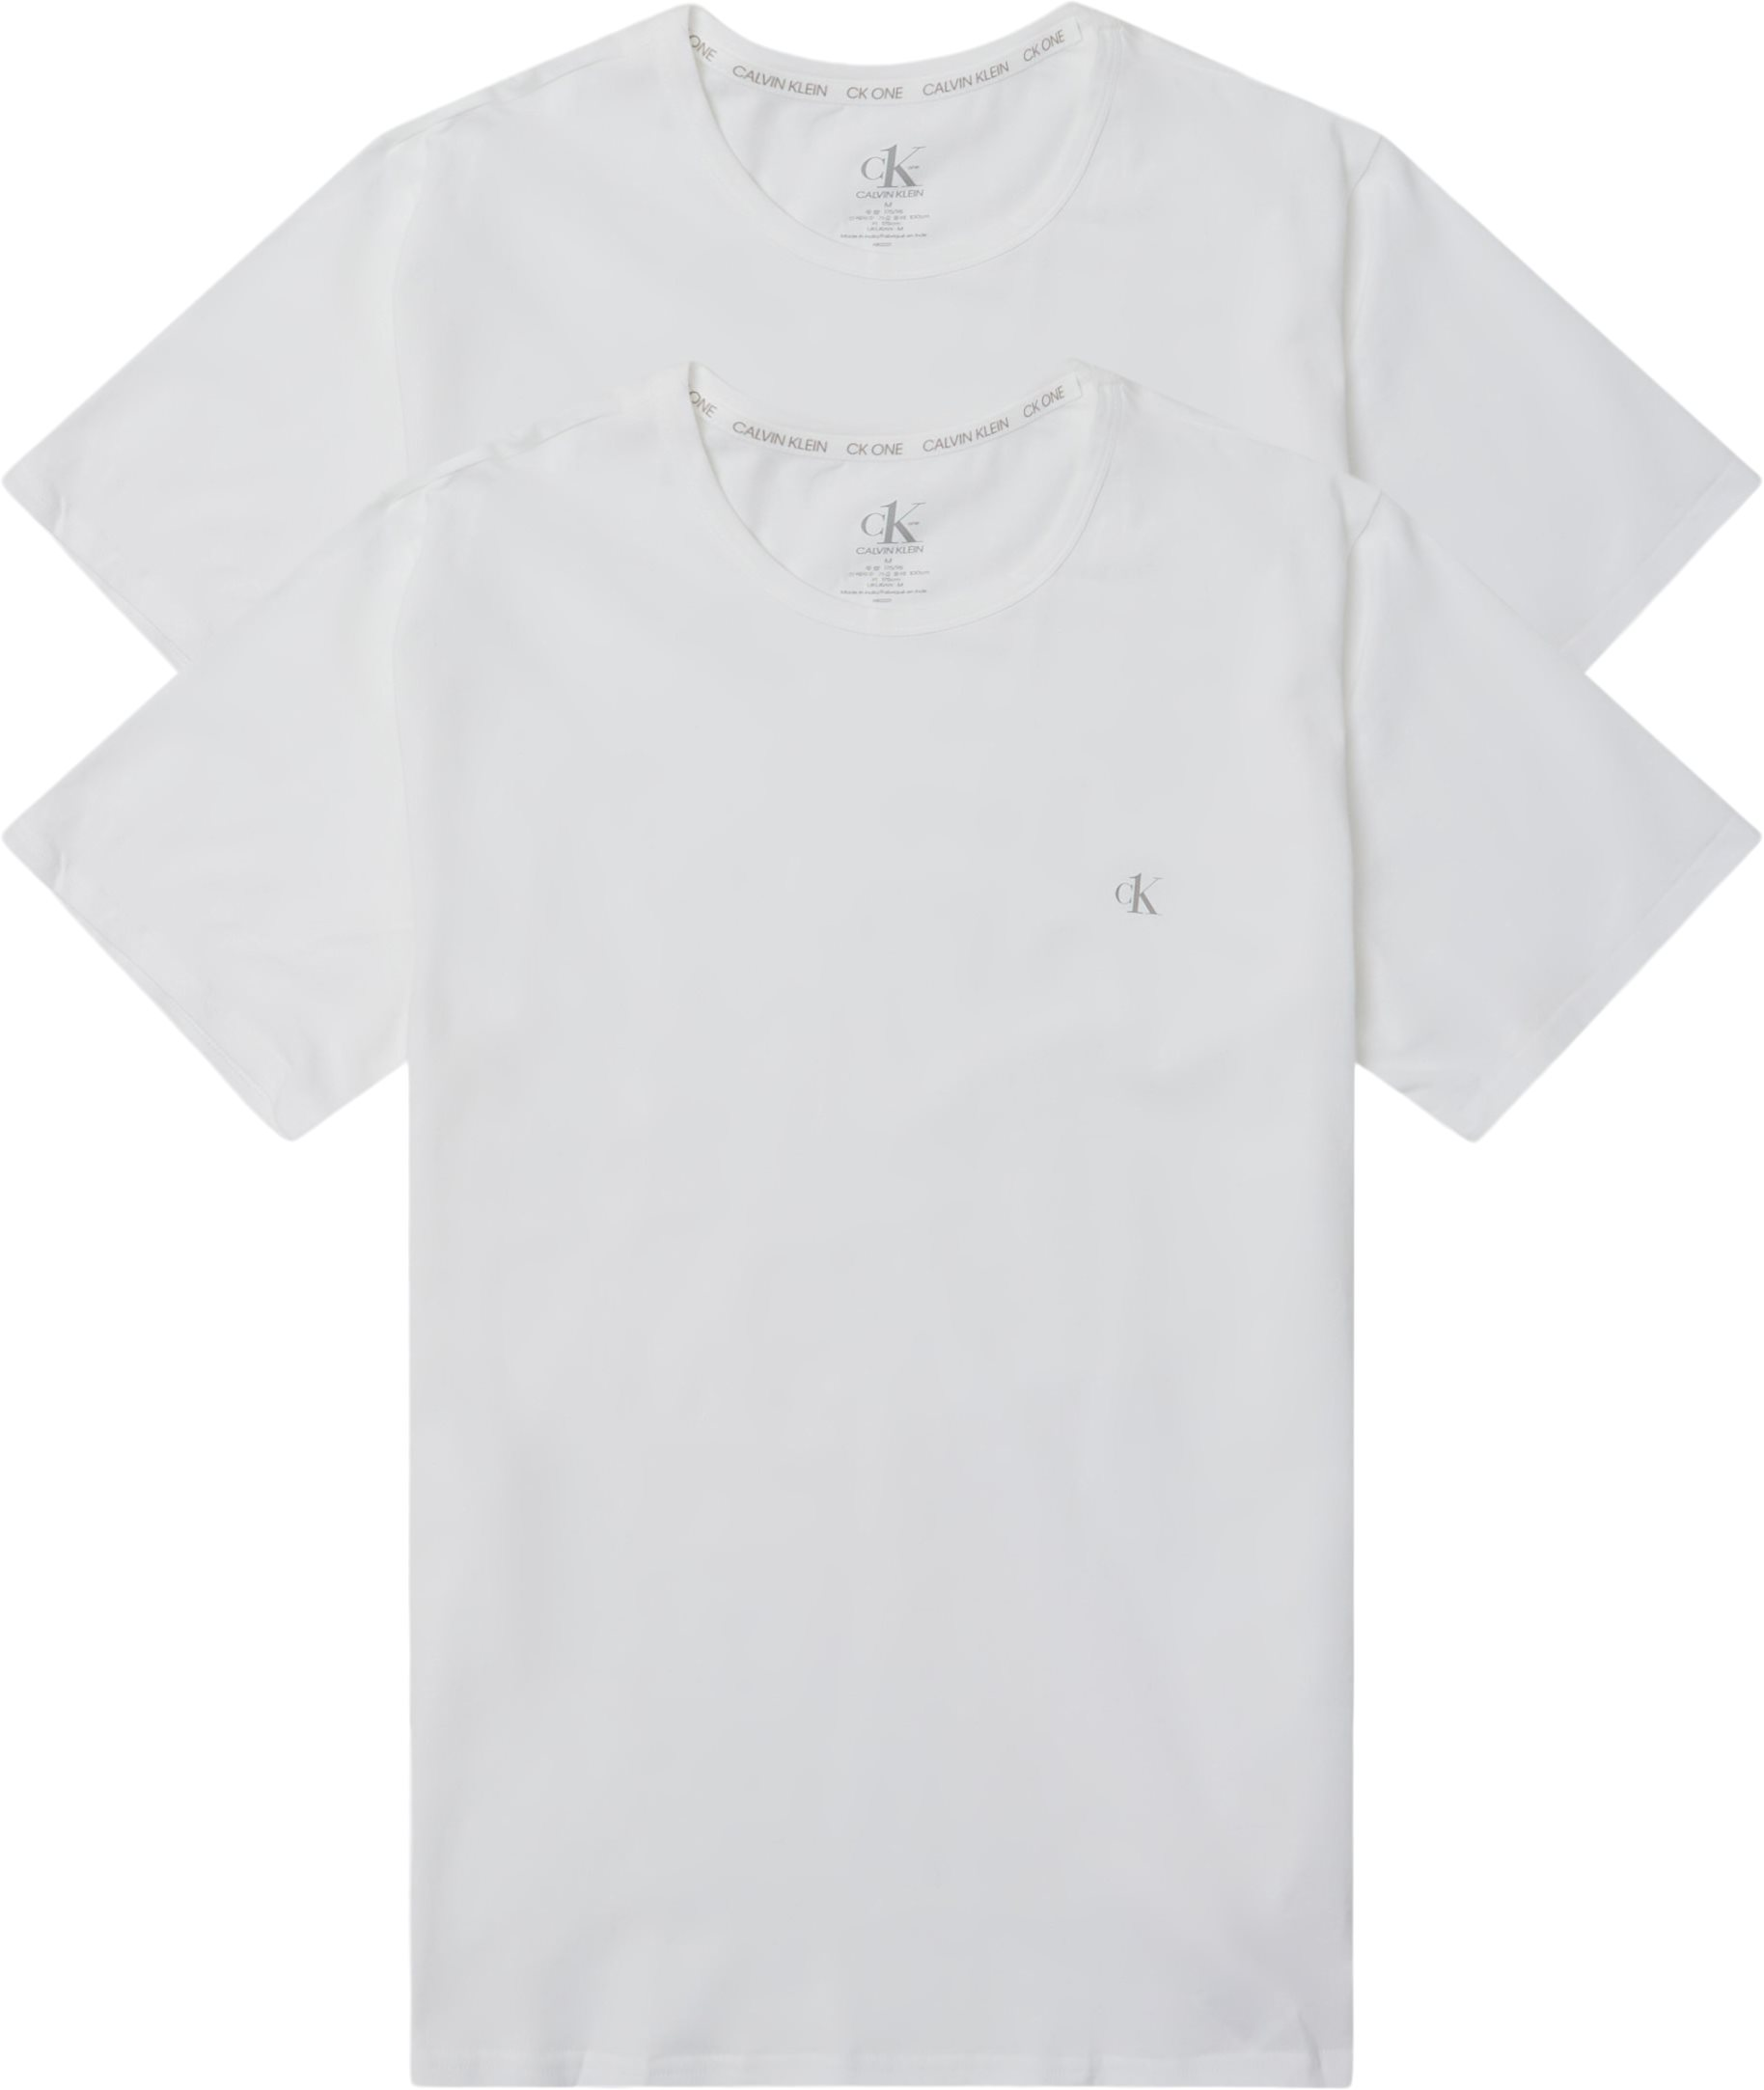 T-shirts - Regular fit - Vit